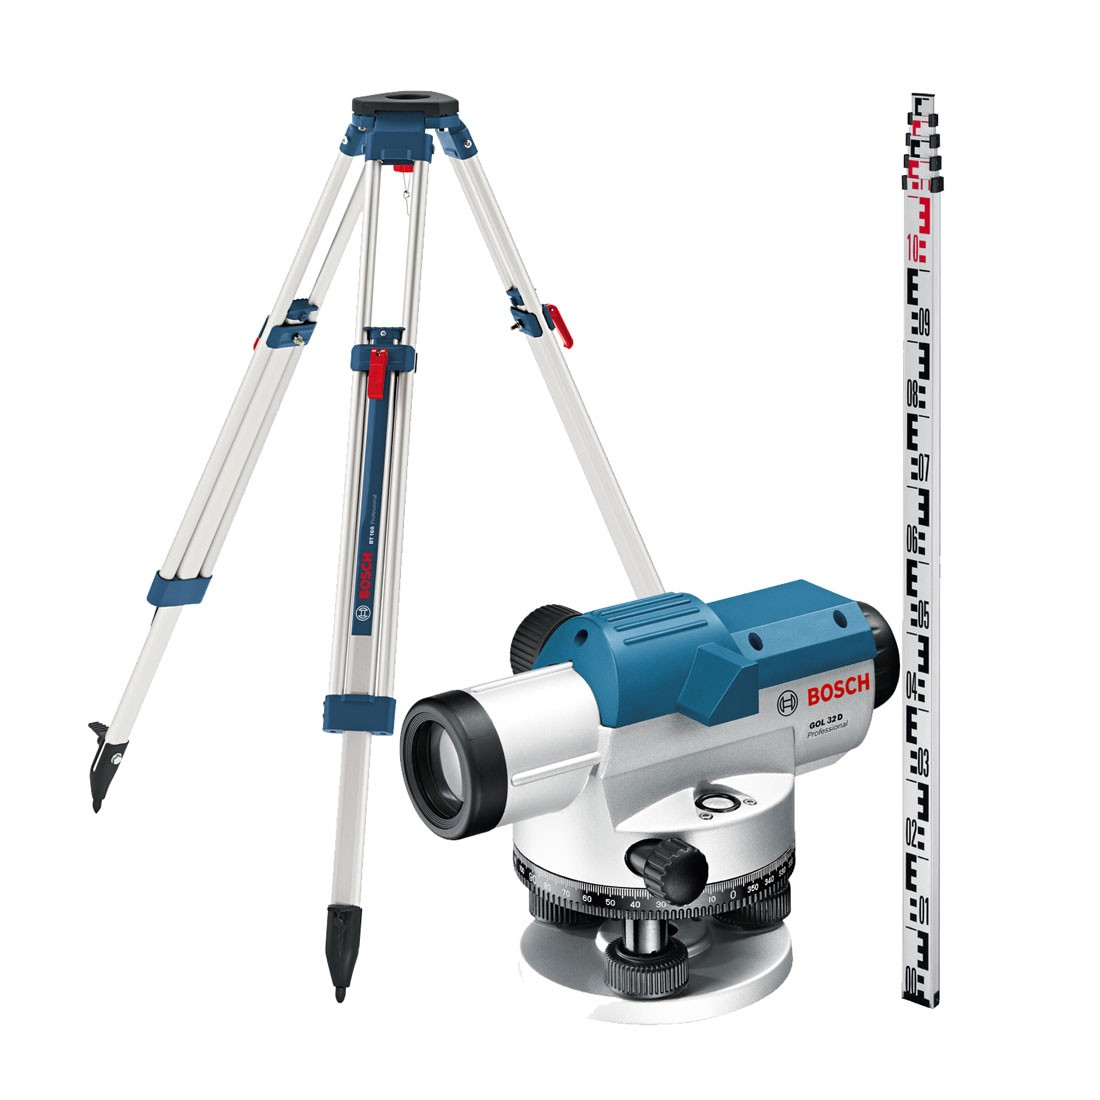 Bosch GOL 32D + BT160 + GR500 Optical Level Set